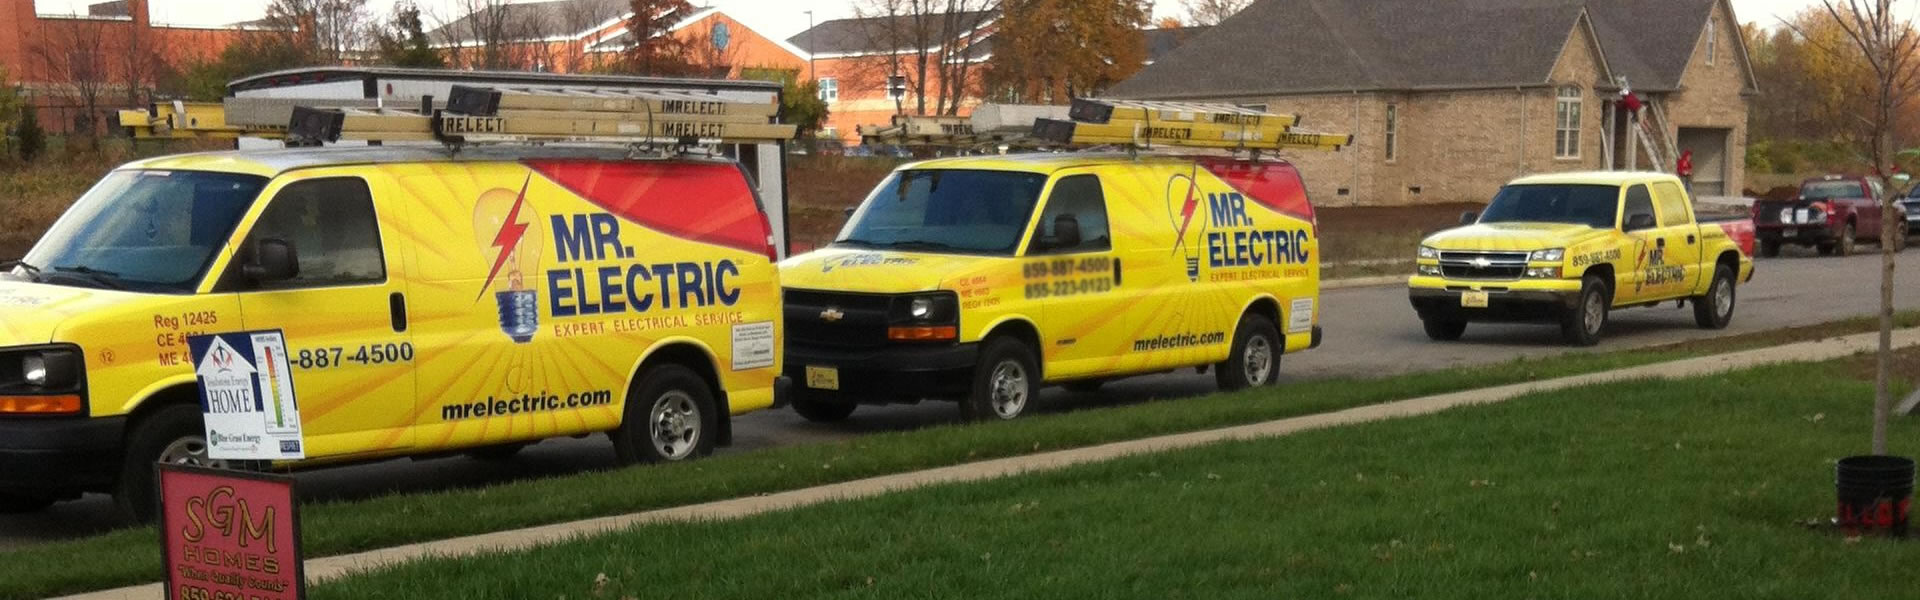 24 Hour Emergency Electrical Repair Services In Fort Worth